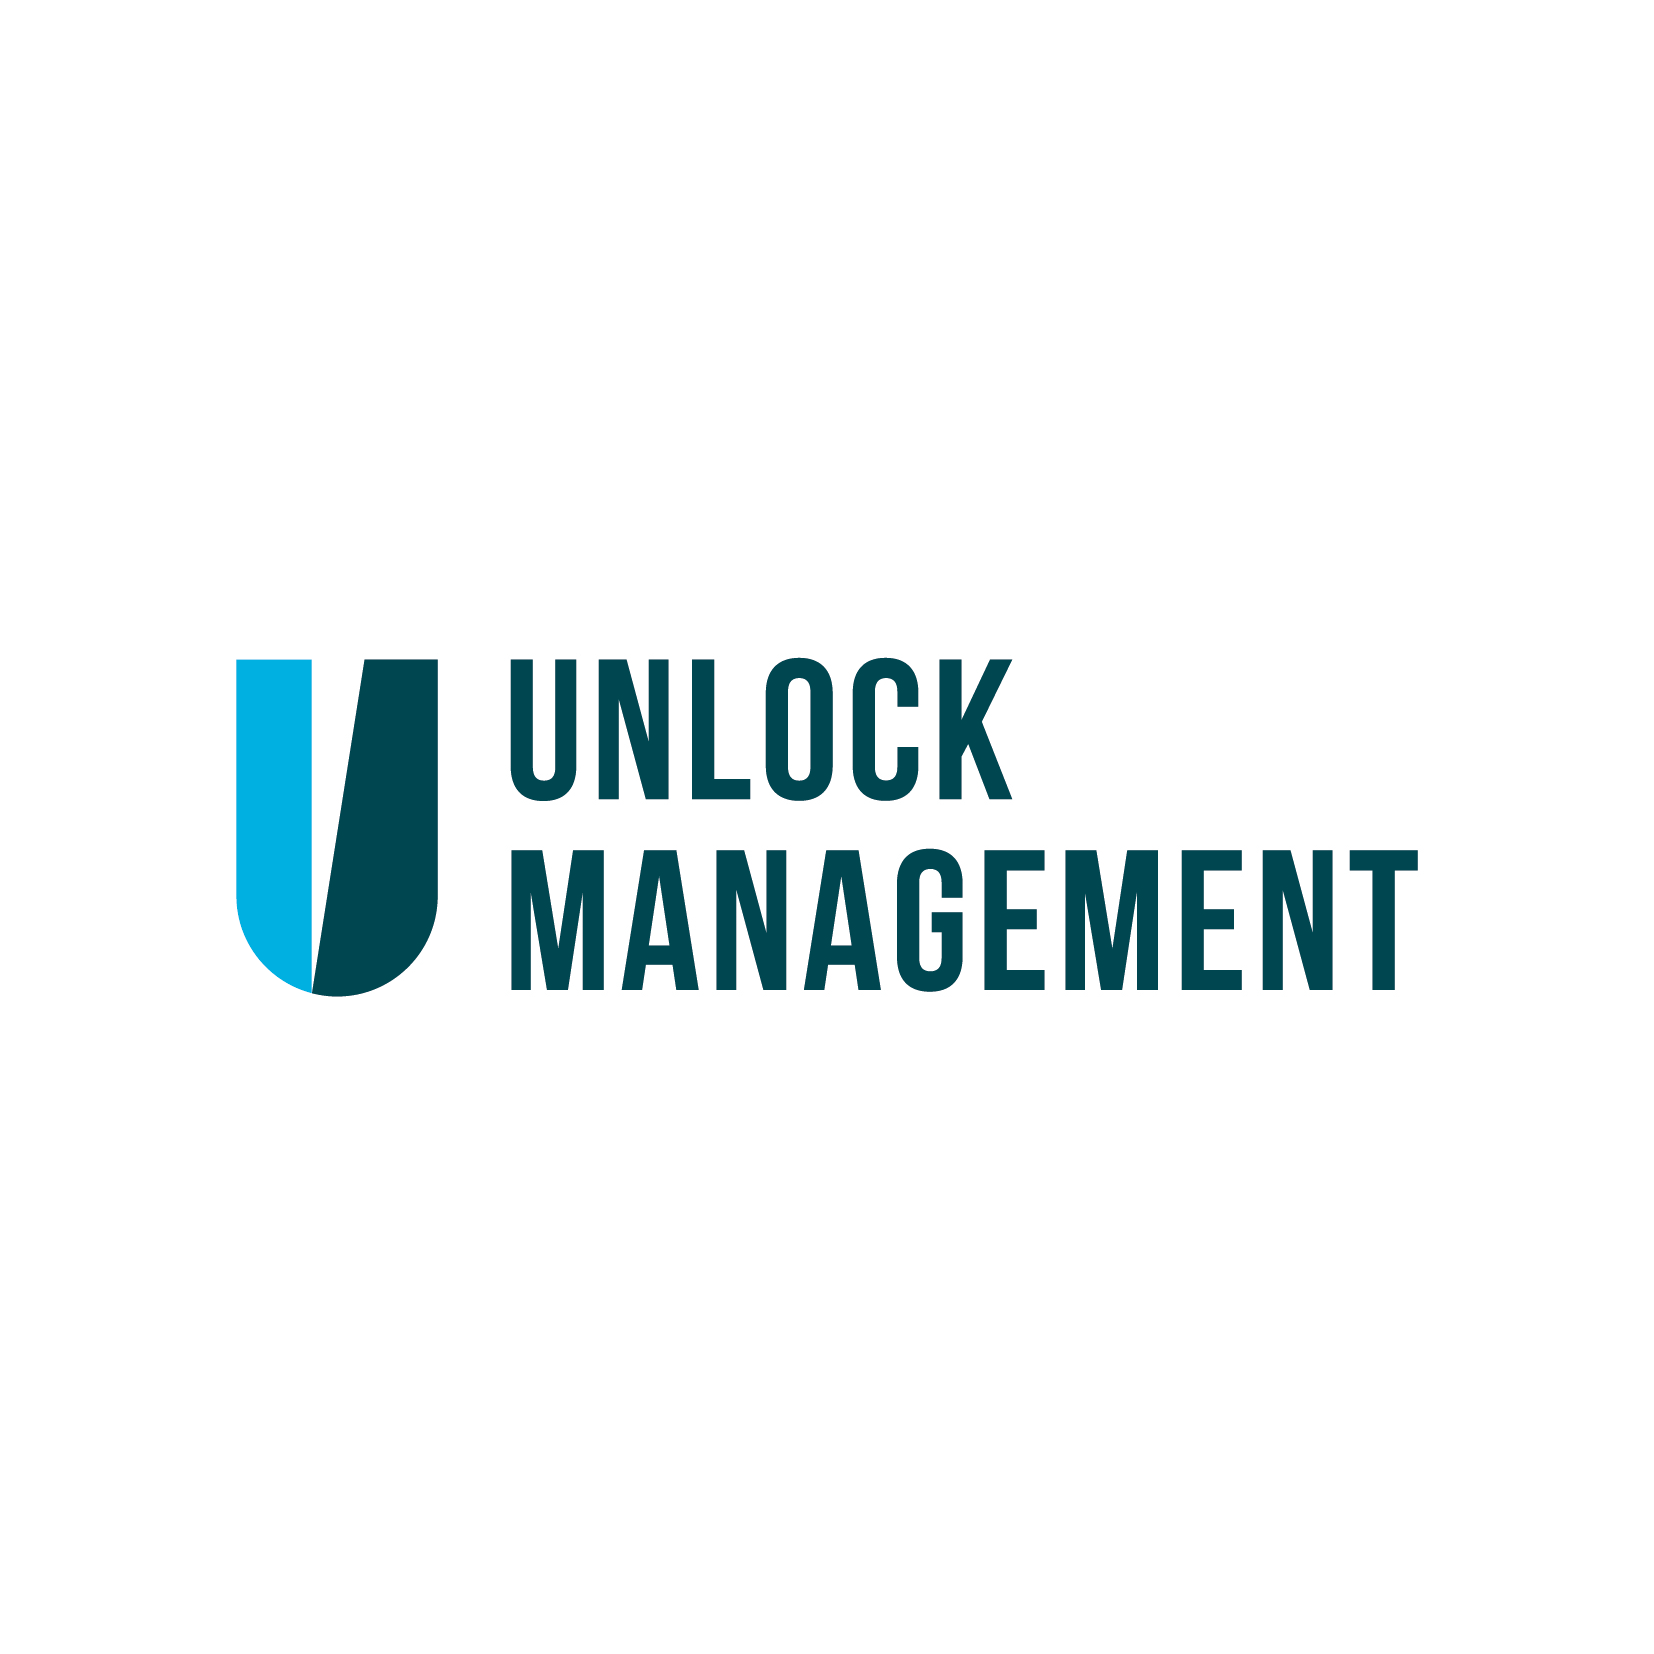 Unlock Management logo